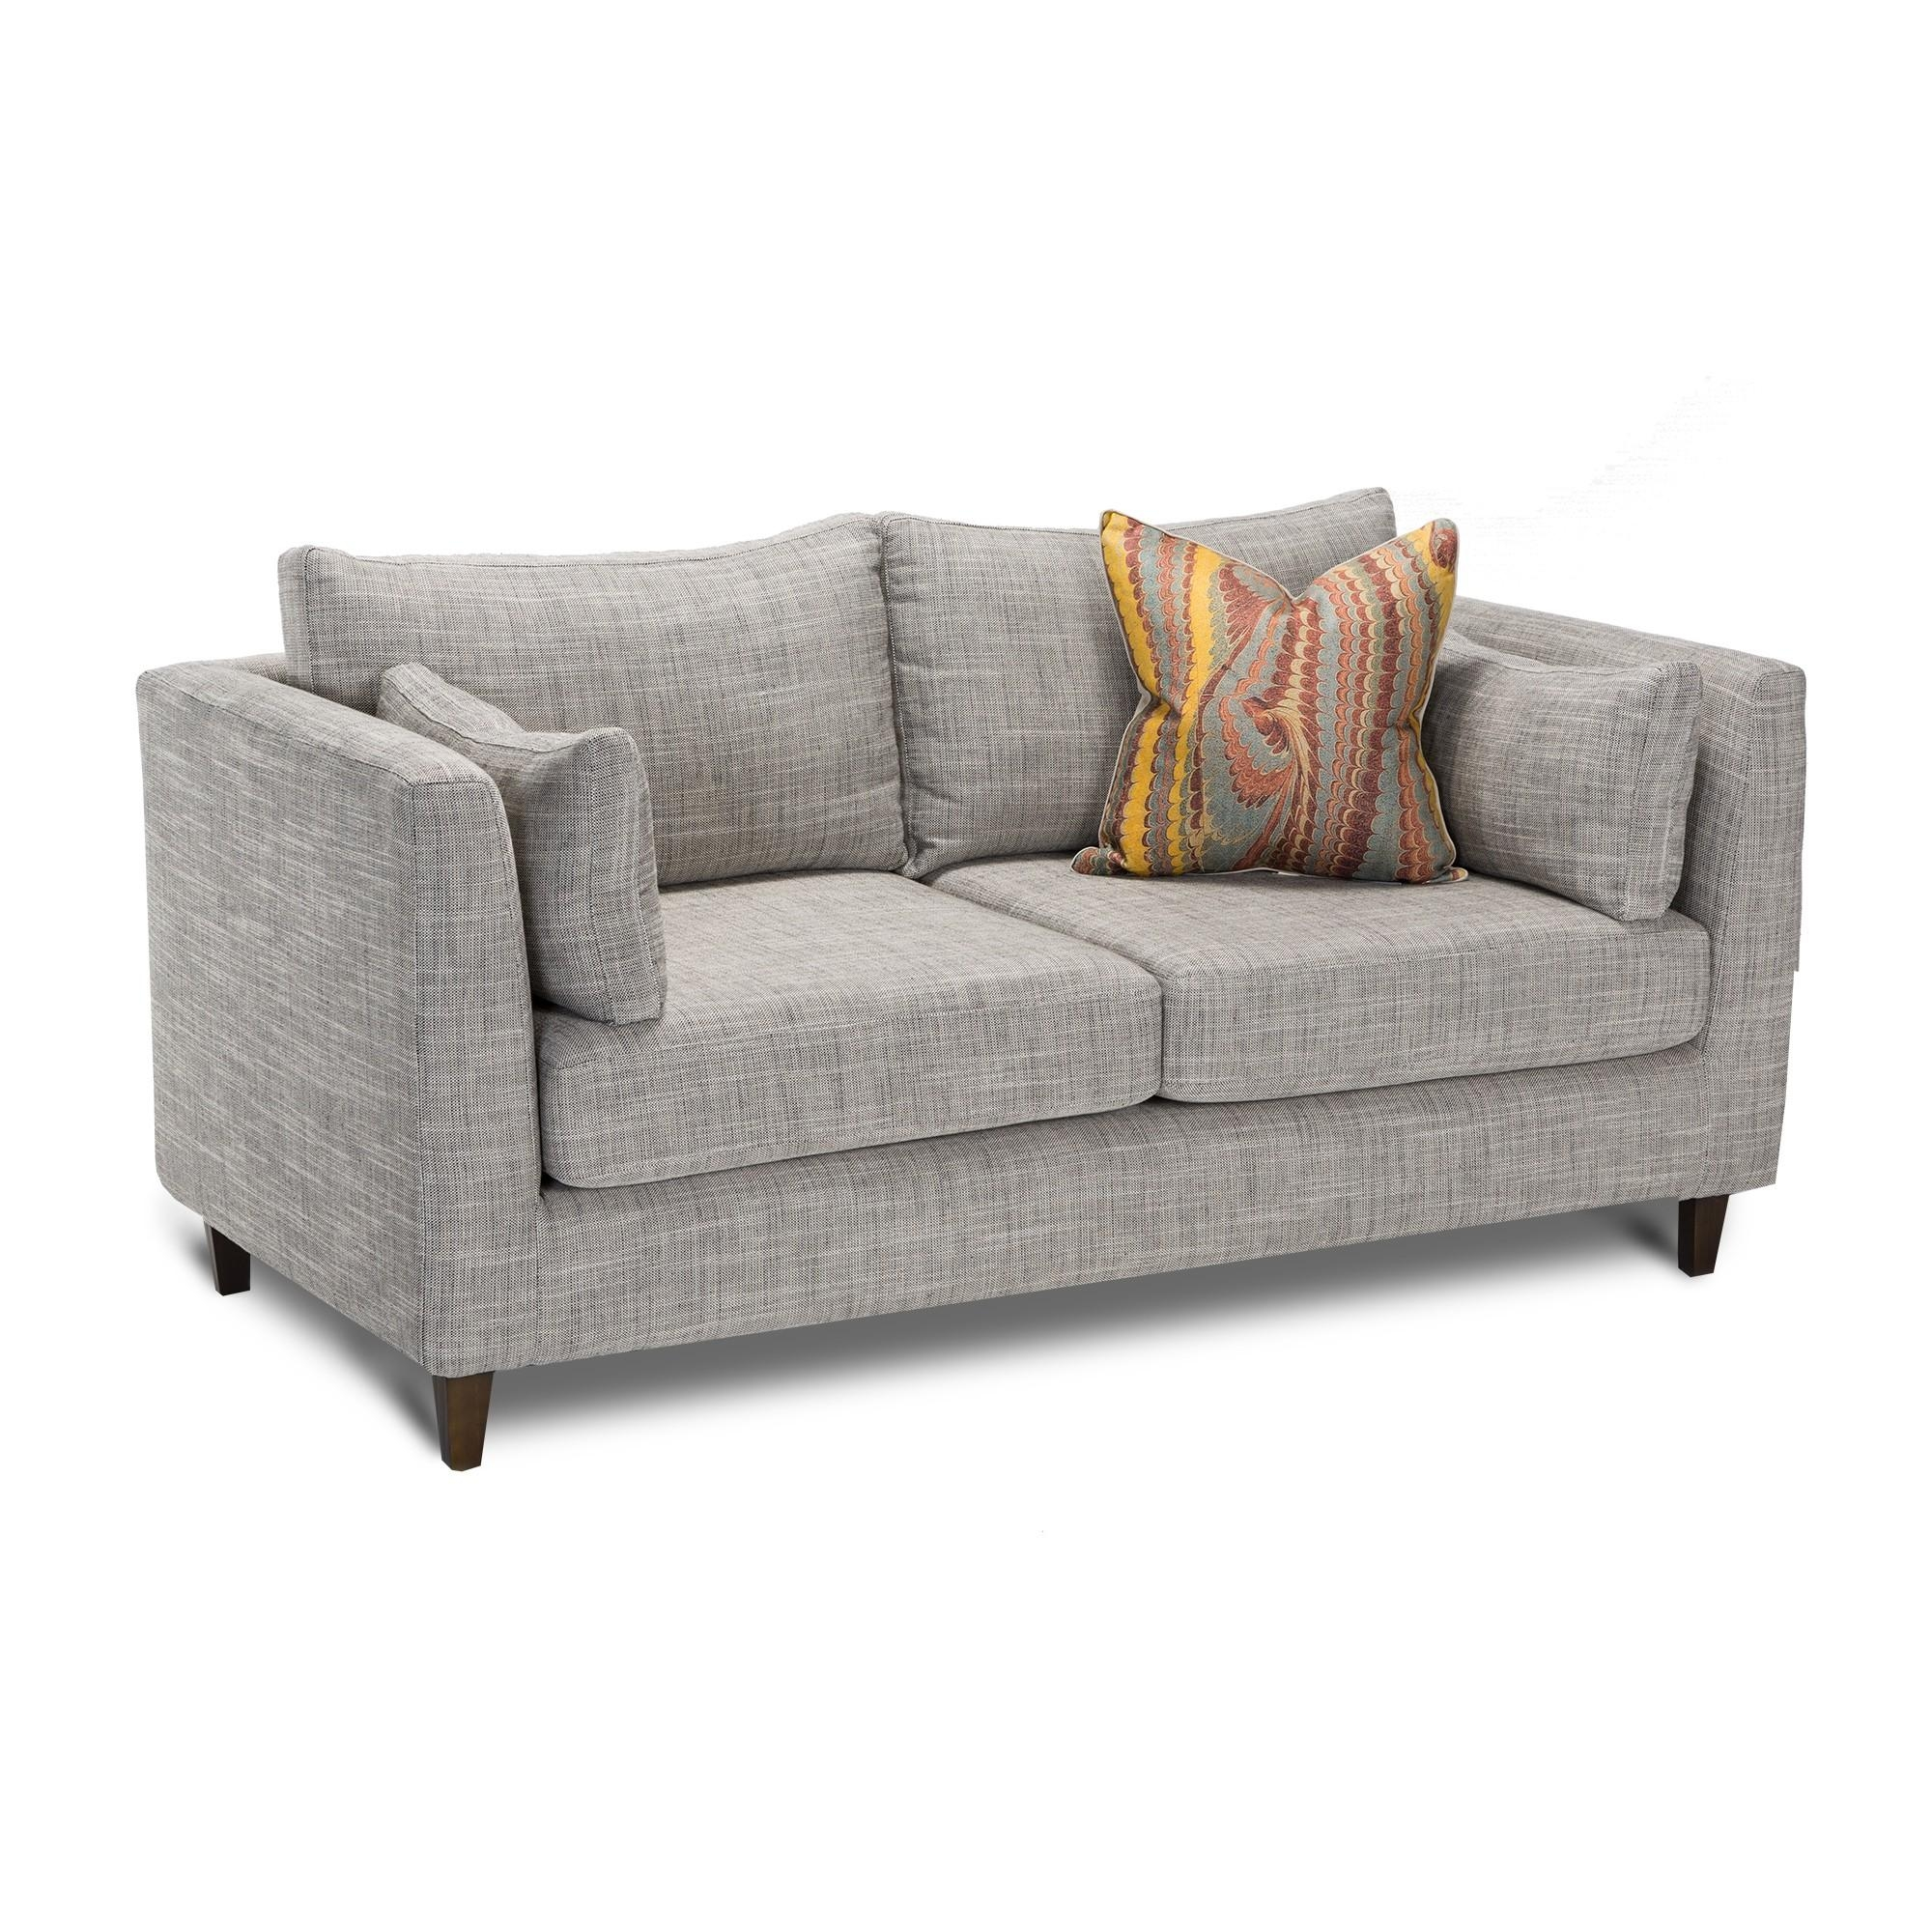 Harrison Sofa – Furniture Within Harrison Sofas (View 5 of 20)